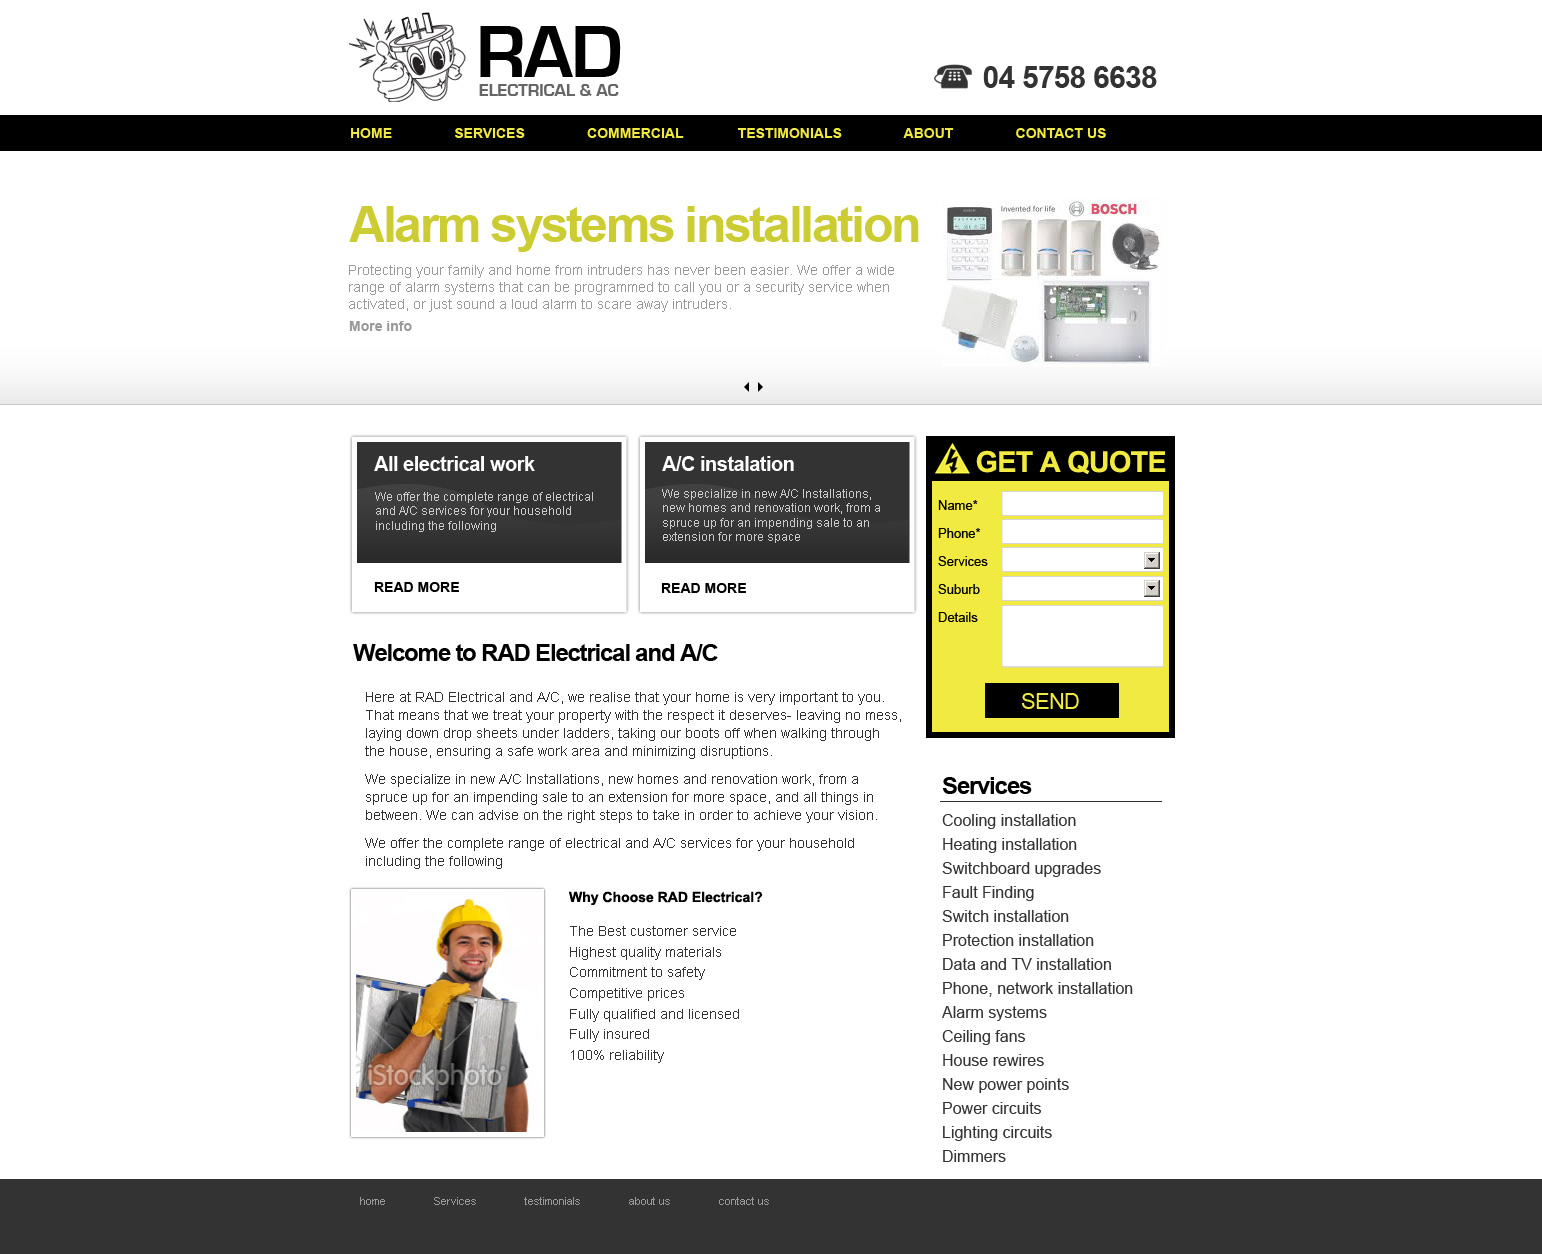 Local electrician web design Melbourne - Axpamdesign - Web Design ...